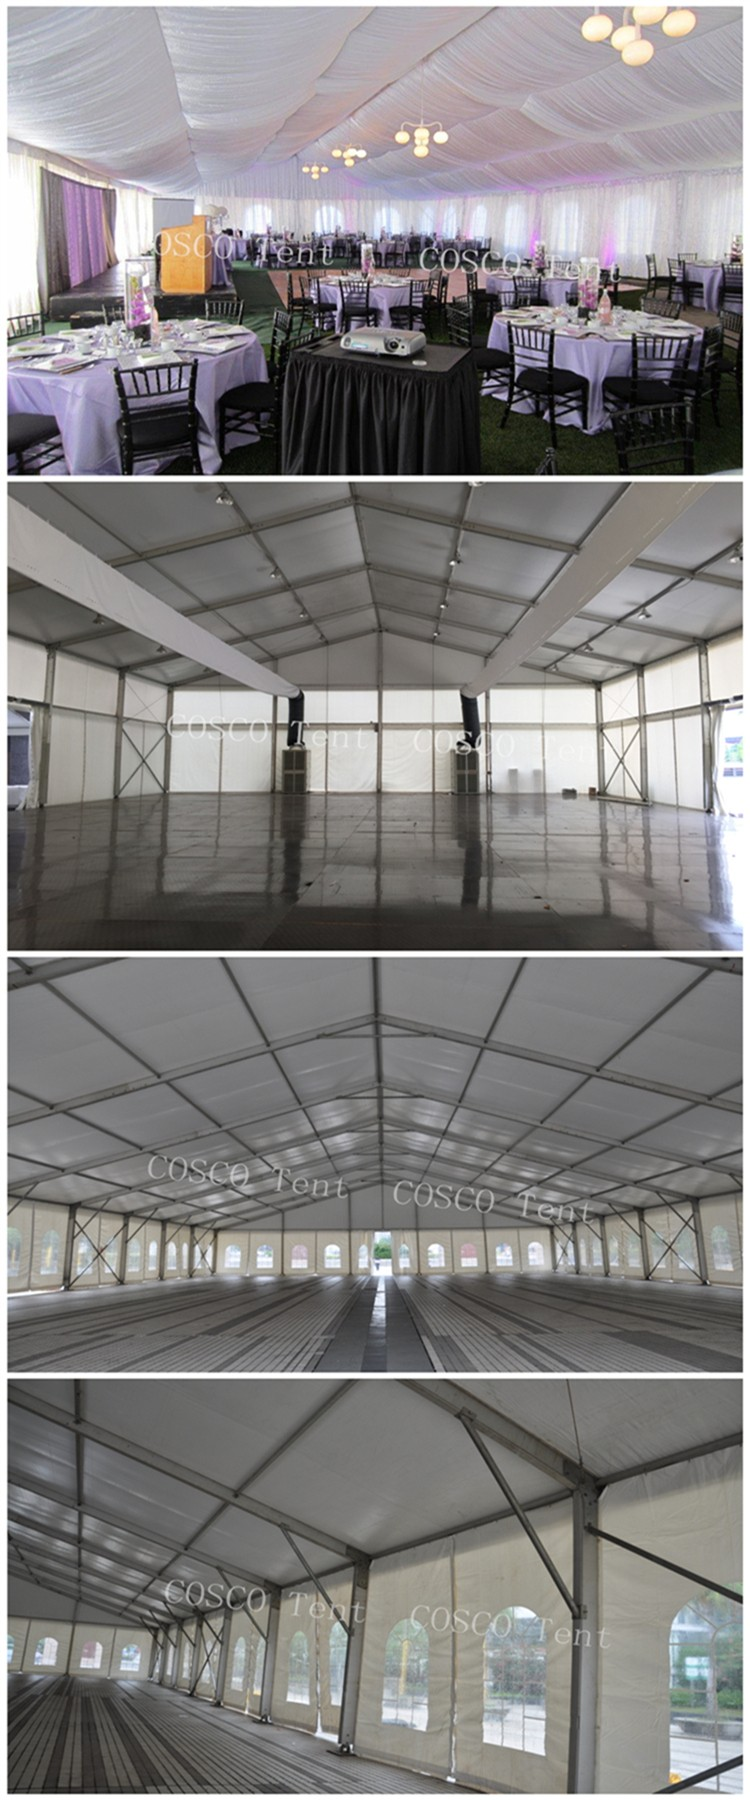 Special large outdoor curved event tent for exhibition